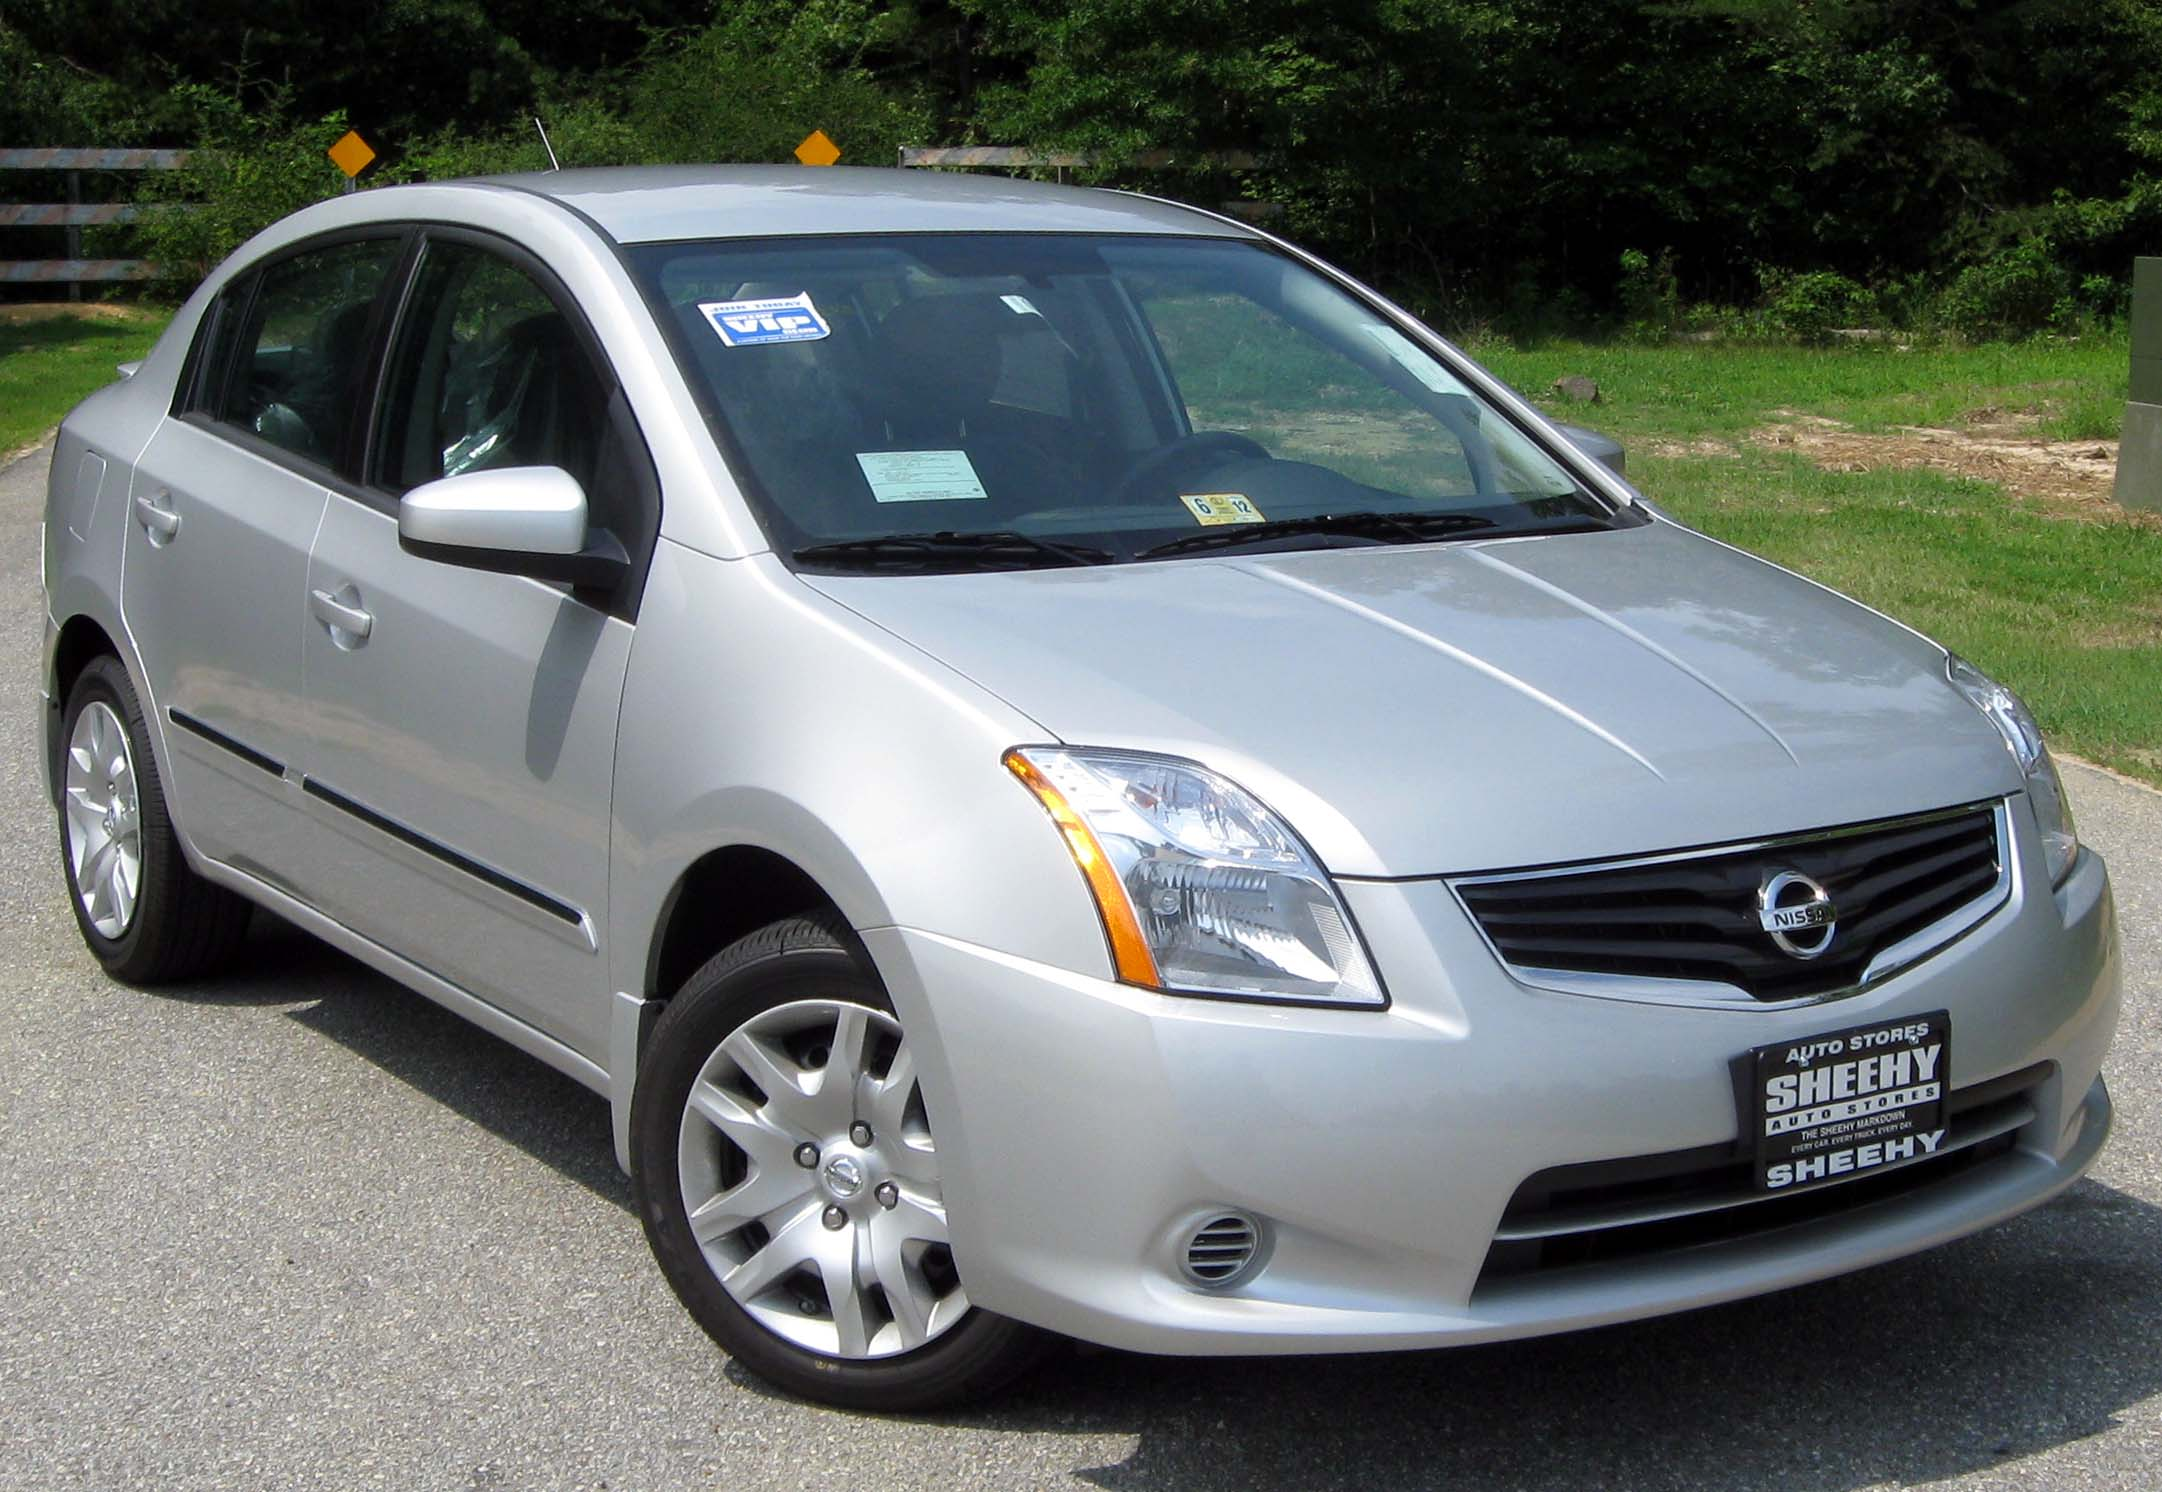 file:2011 nissan sentra 2.0 s -- 07-13-2011 - wikimedia commons